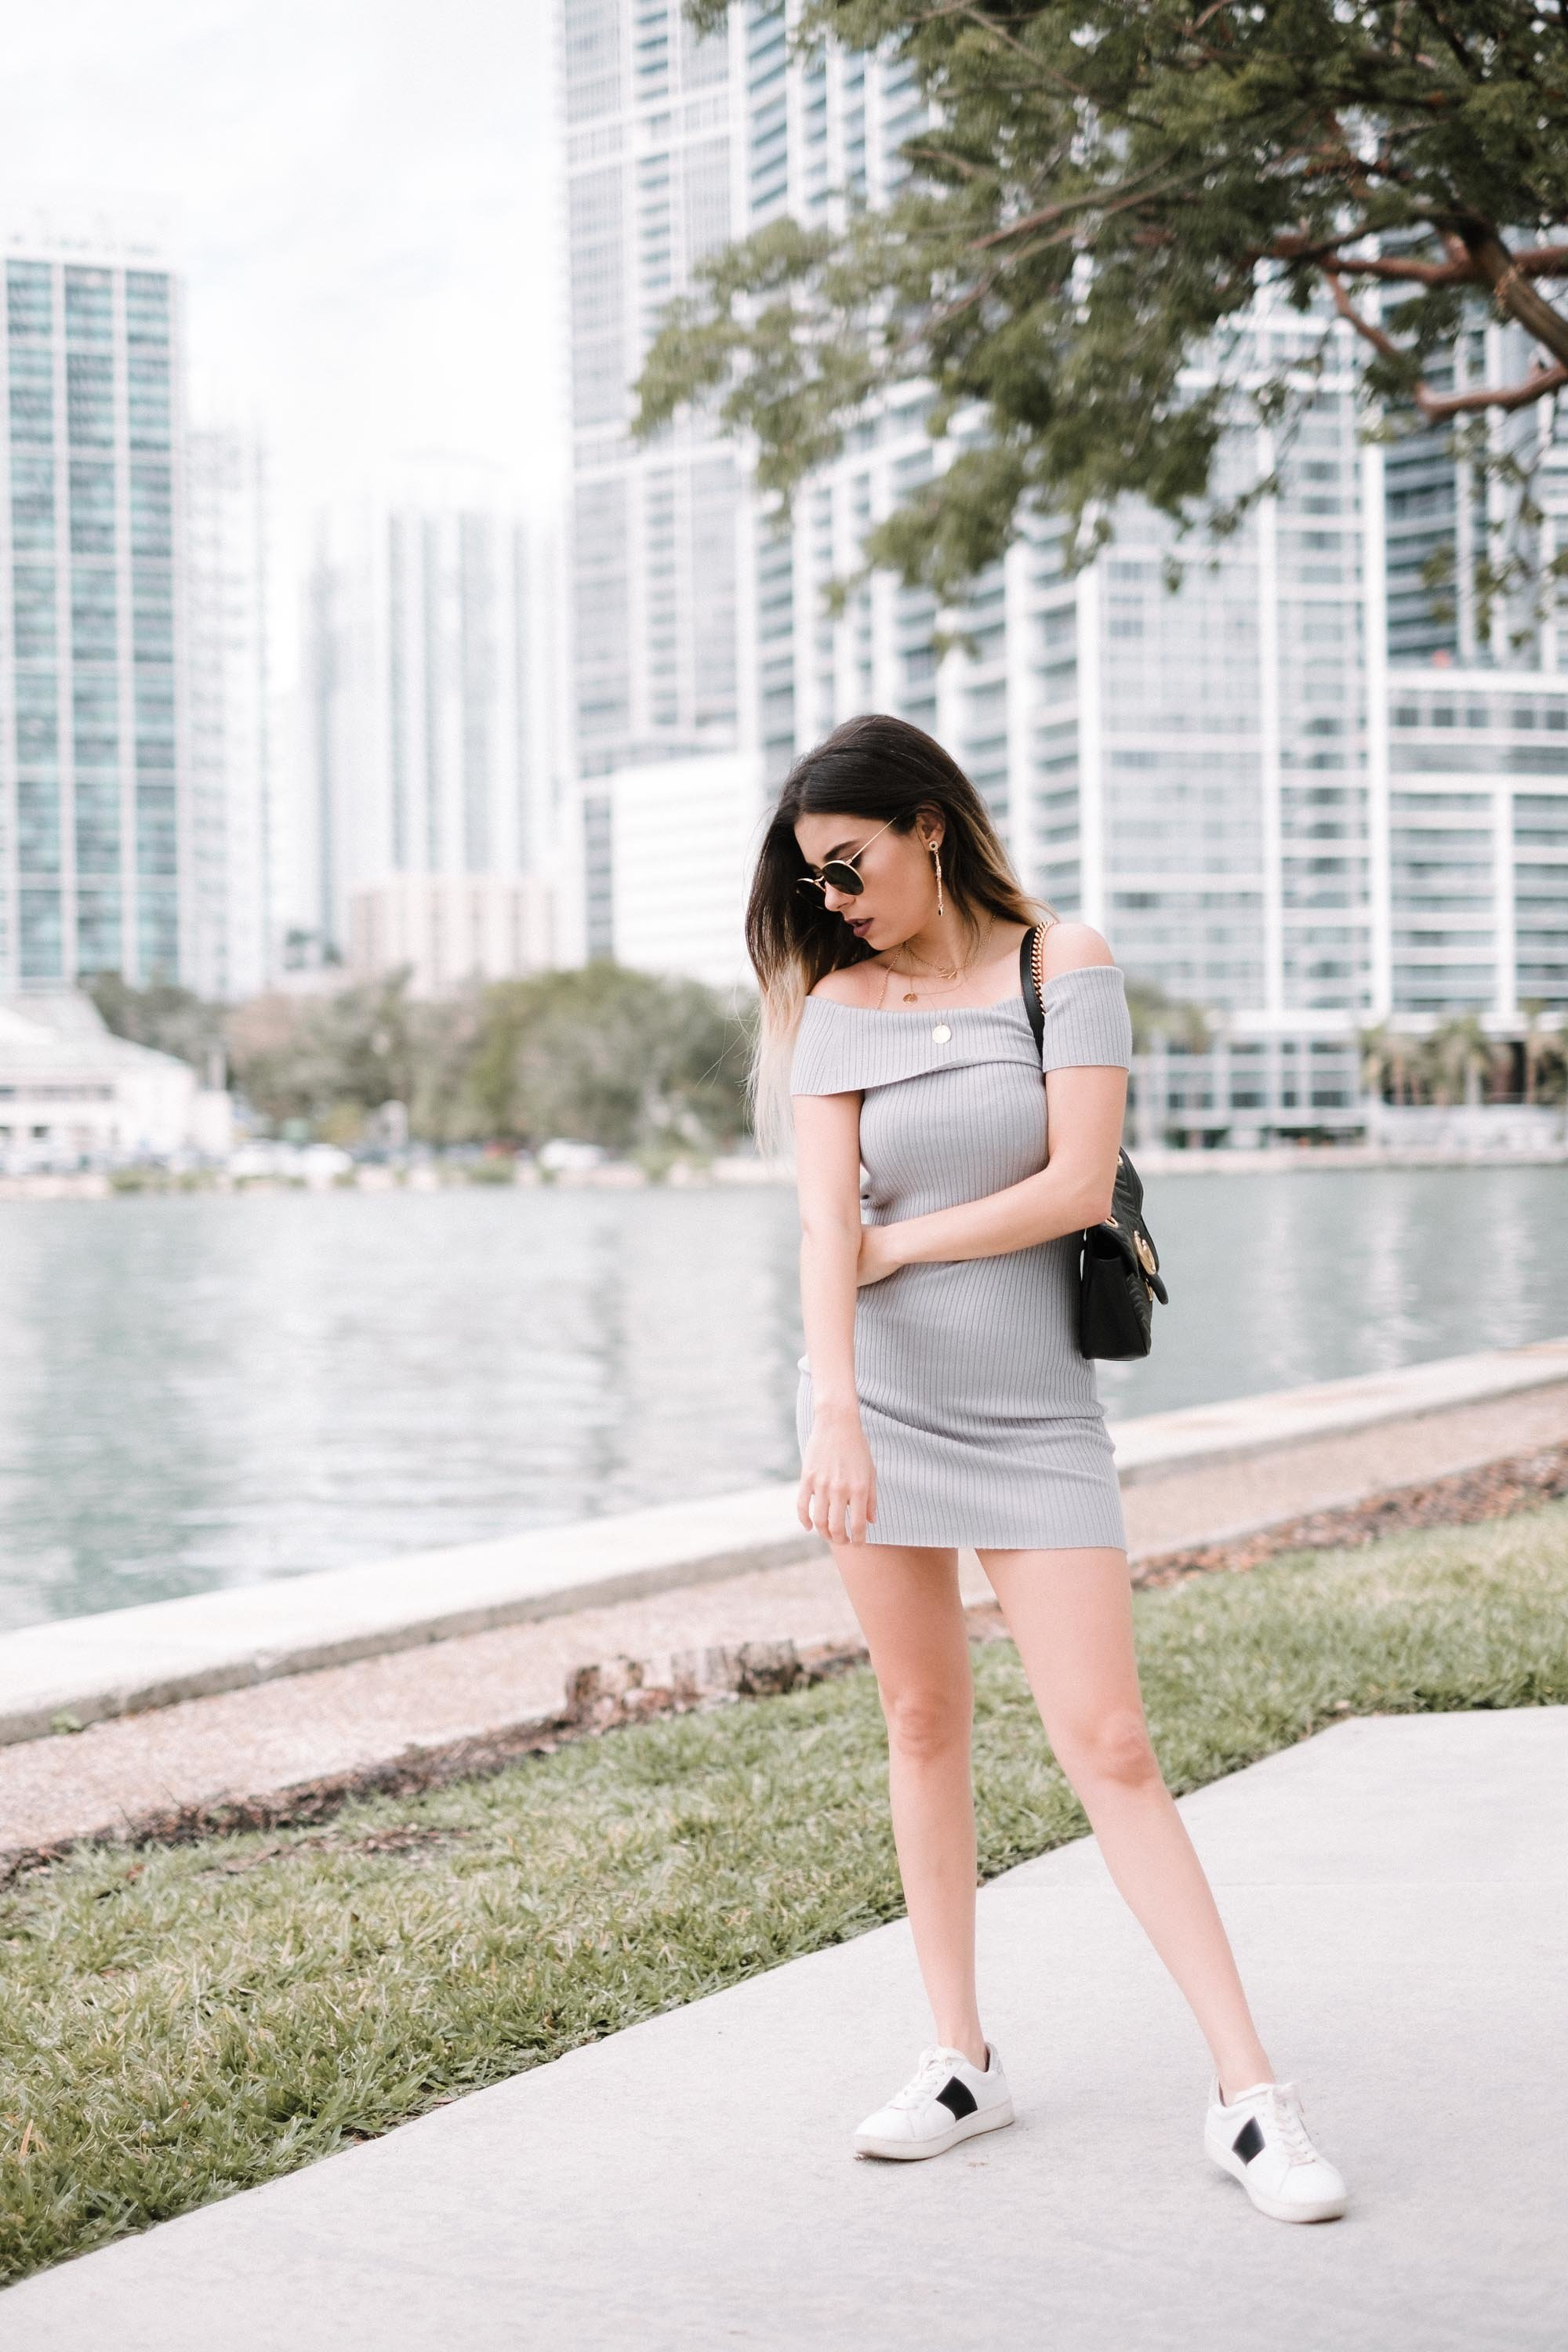 blog-photographer-miami-lucy-126